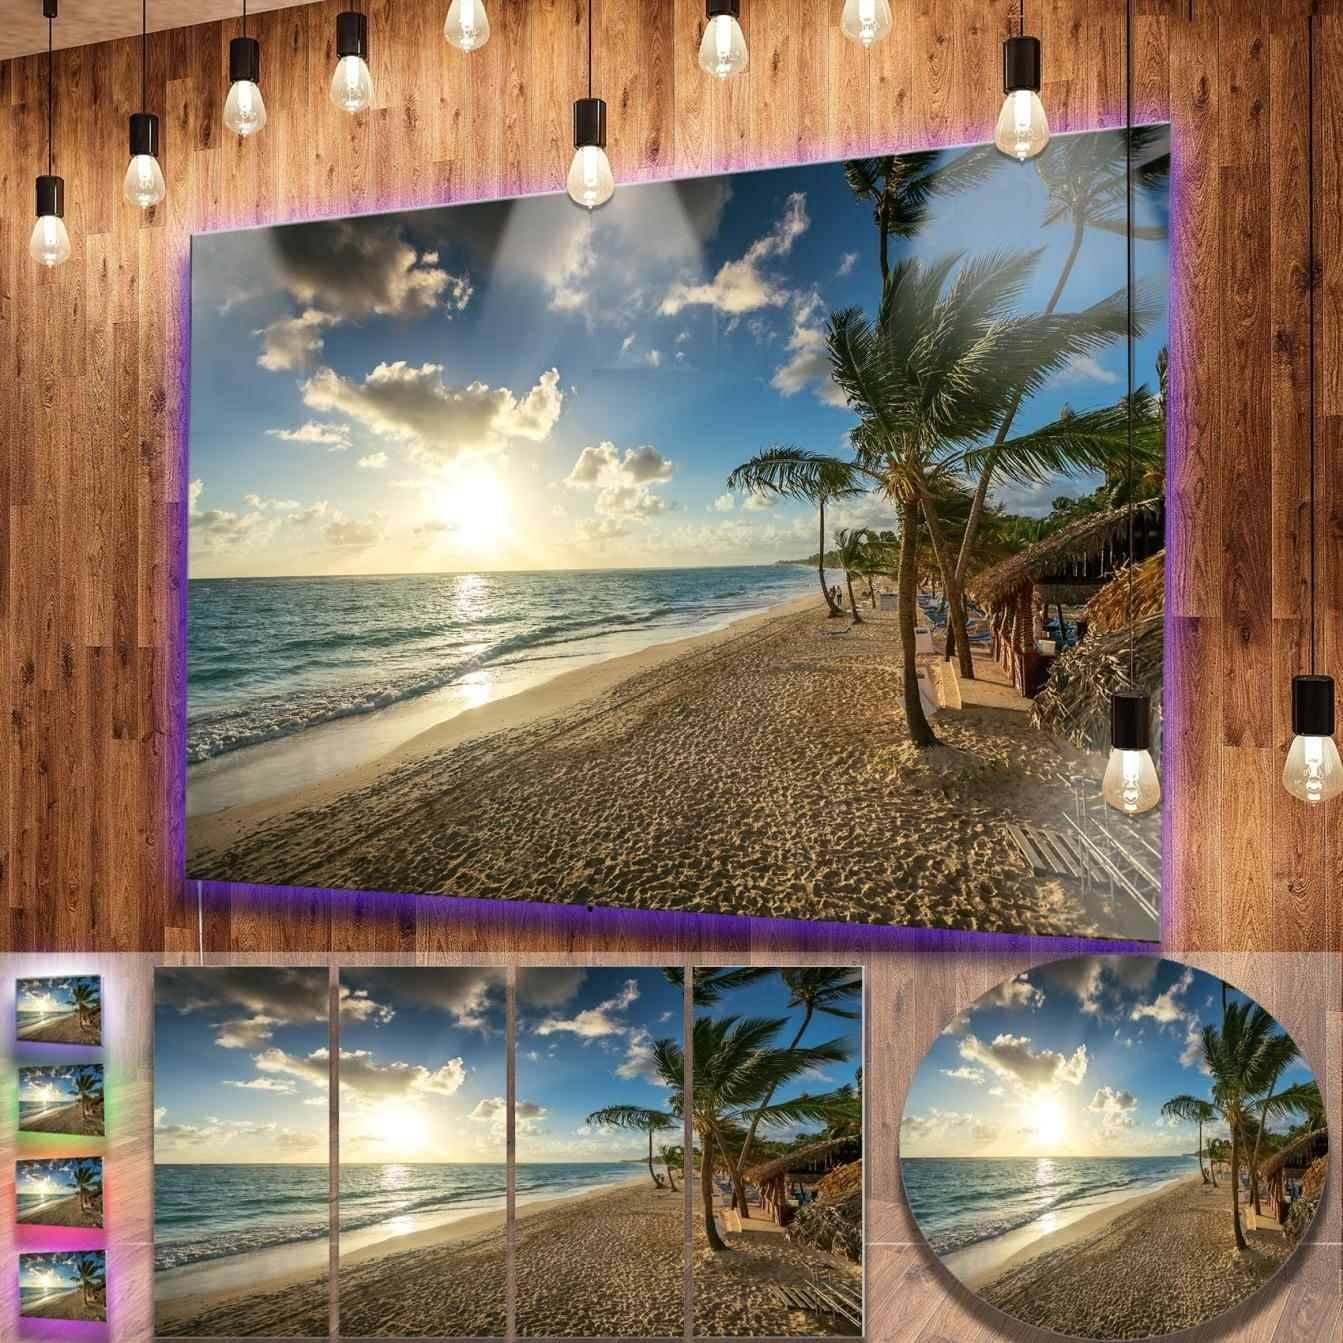 Class Designart Caribbean Metal Wall Art Sand Of Beach In Blue Within 2018 Caribbean Metal Wall Art (View 7 of 20)